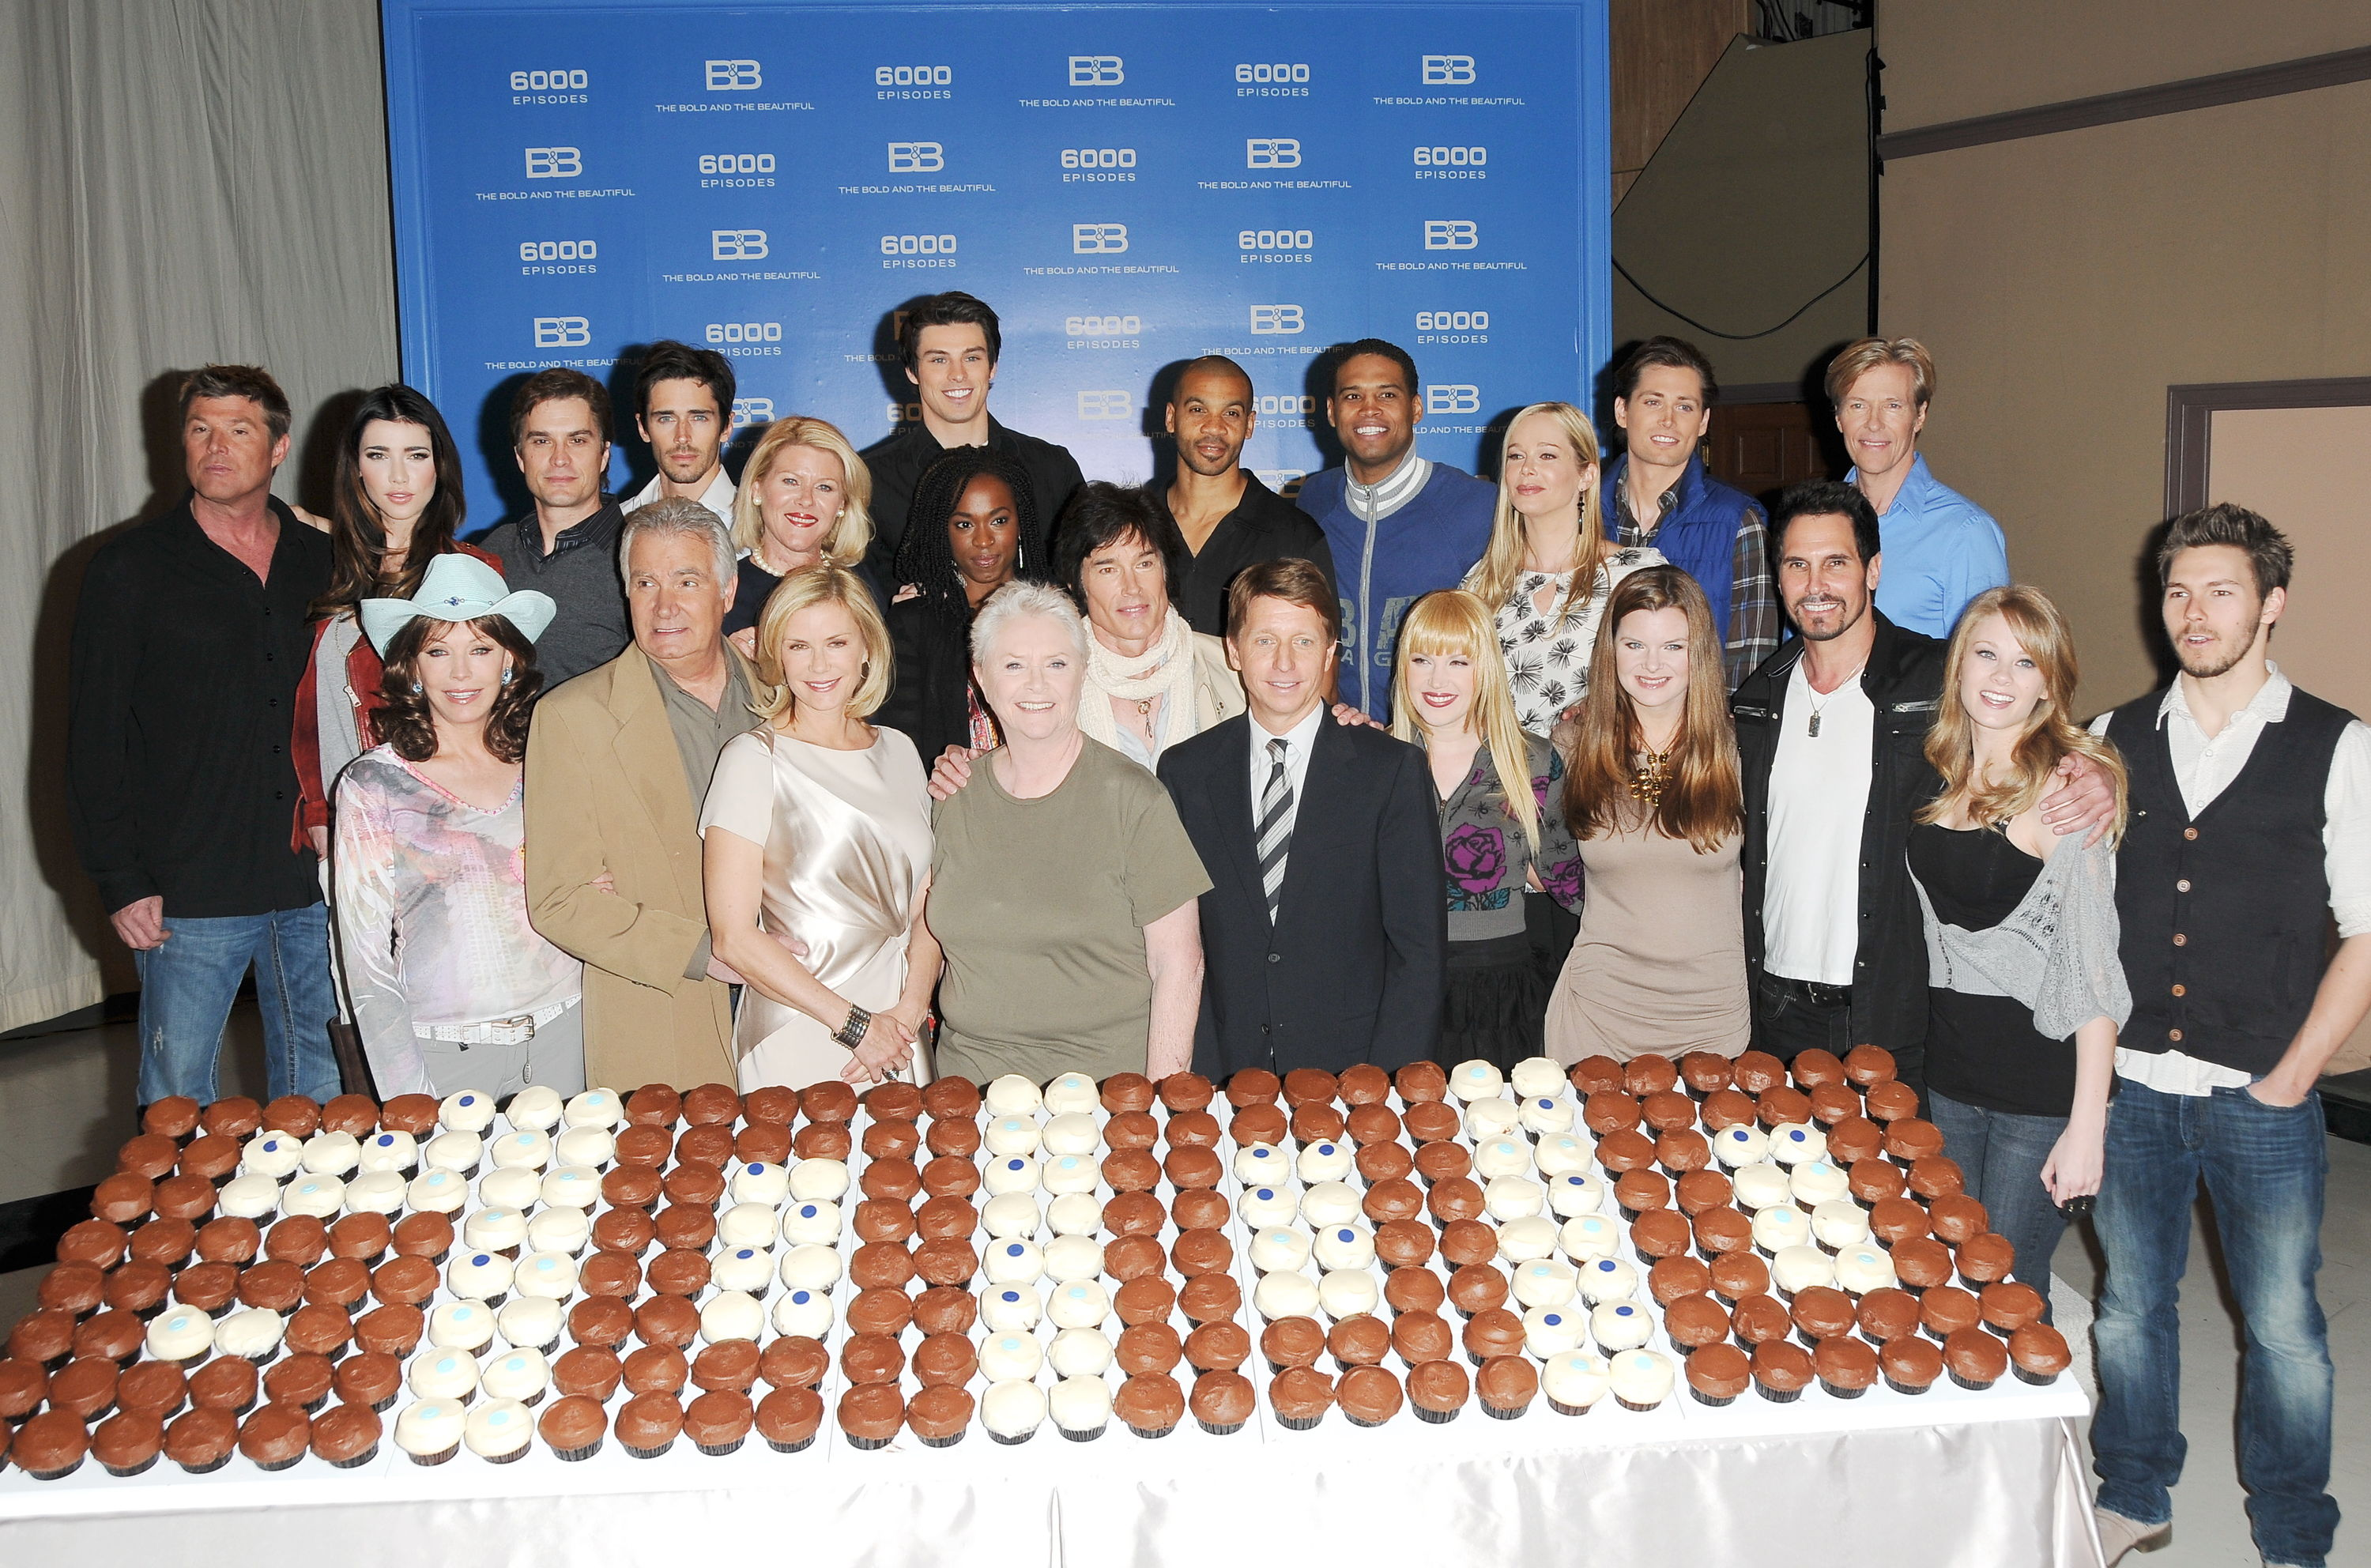 What a treat: Cupcakes deliciously celebrate 6,000 episodes.